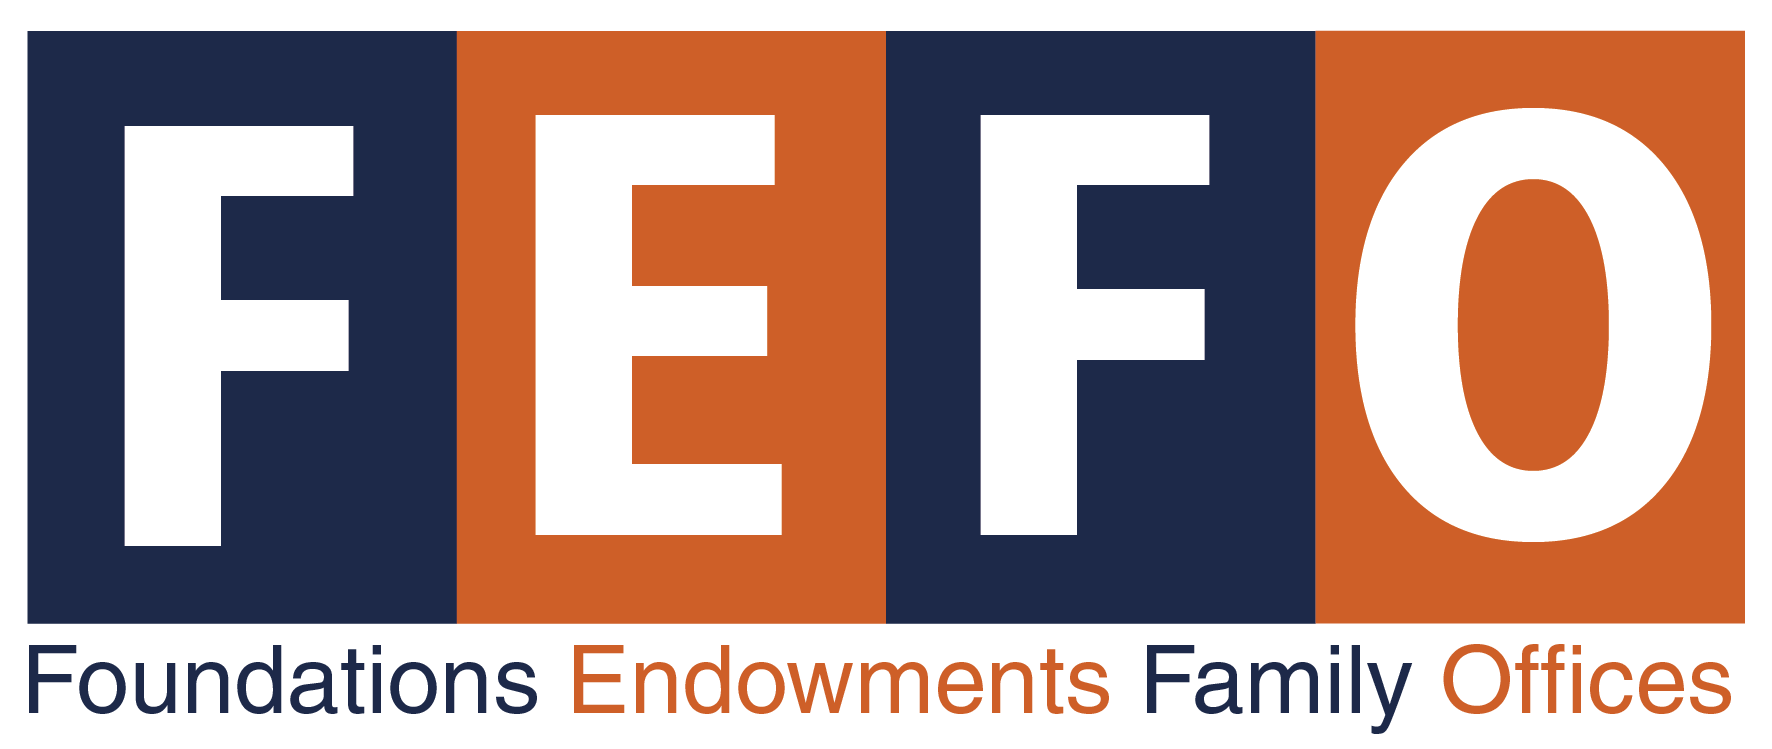 Foundations Endowments Family Offices